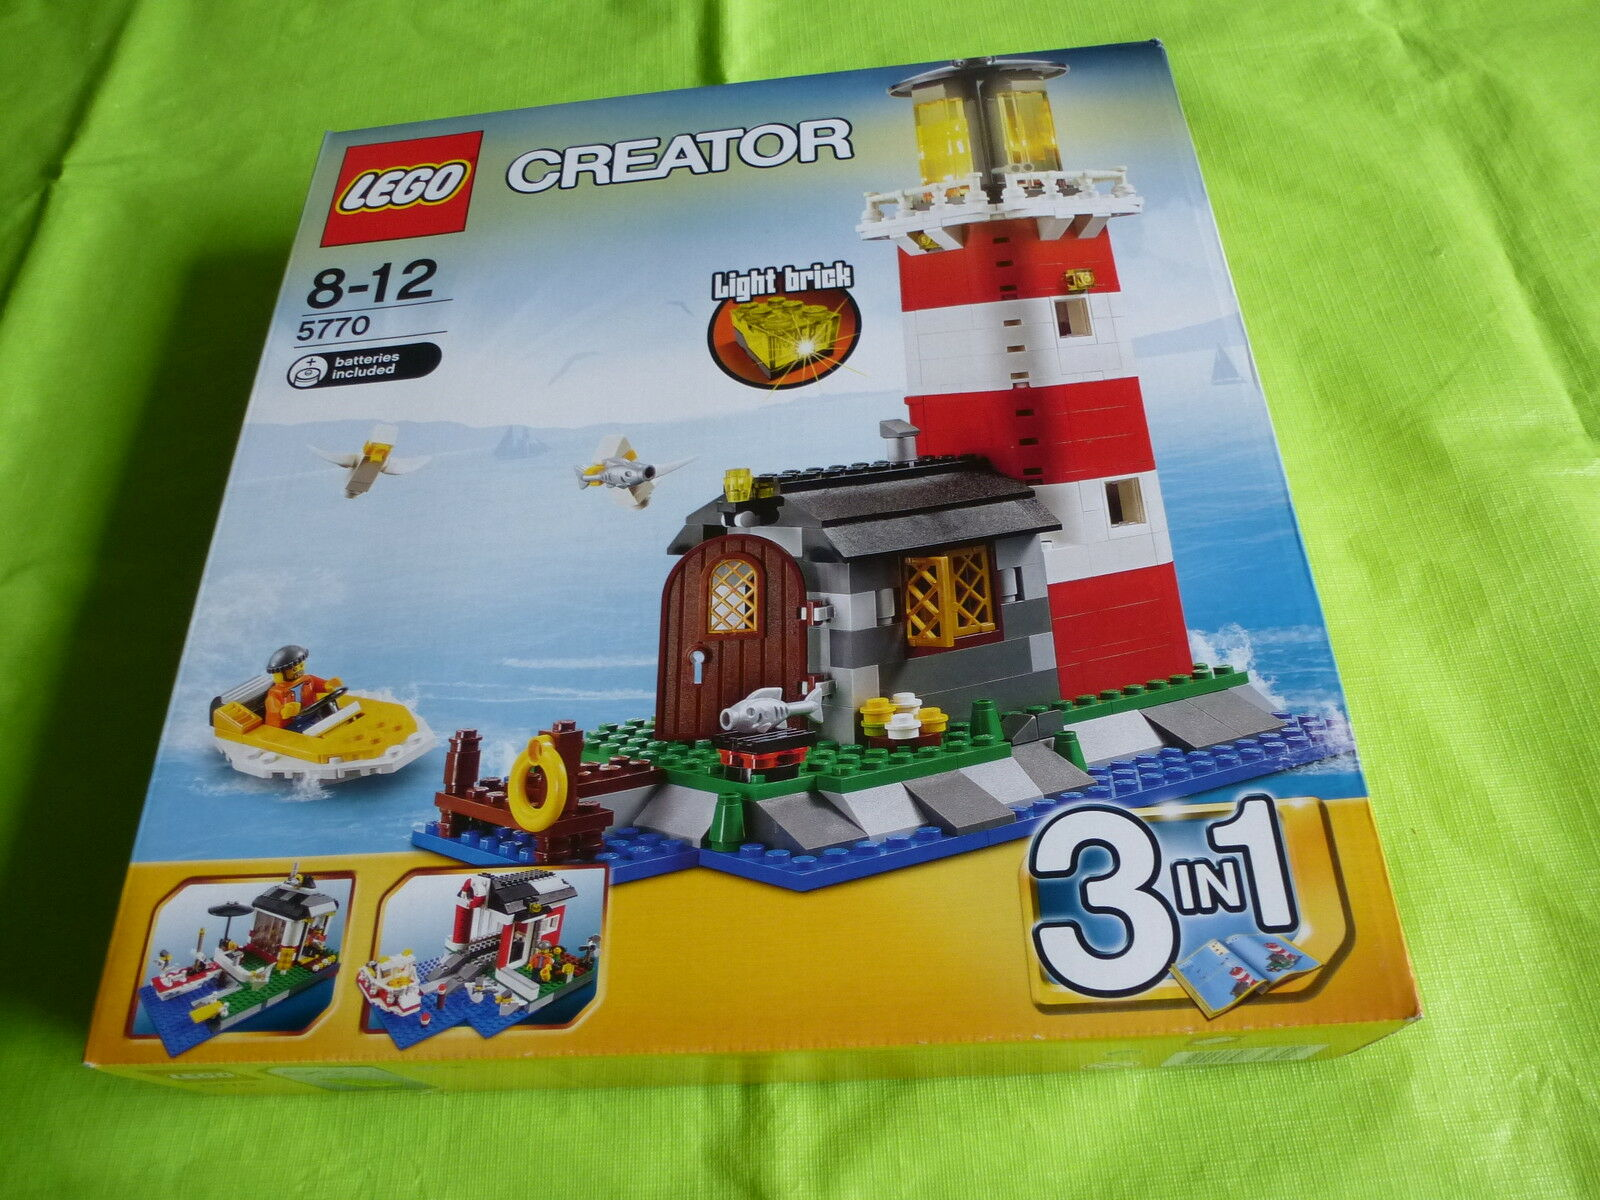 LEGO NEW 5770 Creator Lighthouse Sealed Box 2011 518 pieces  Now Retired